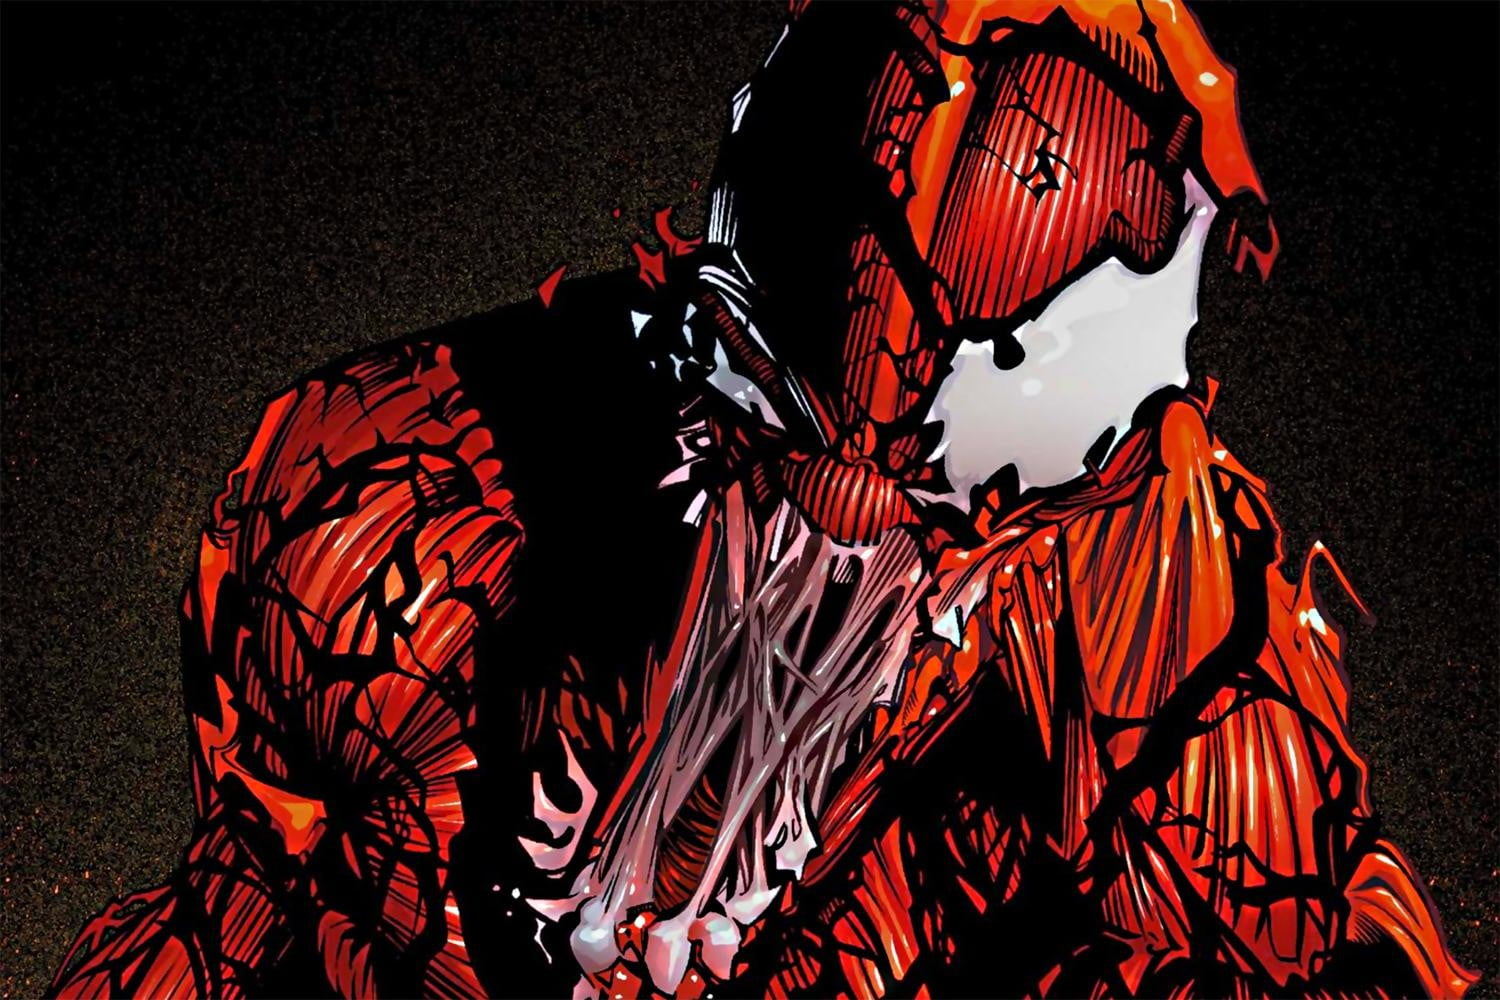 the amazing spider man 2 teases carnage and venom digital trends